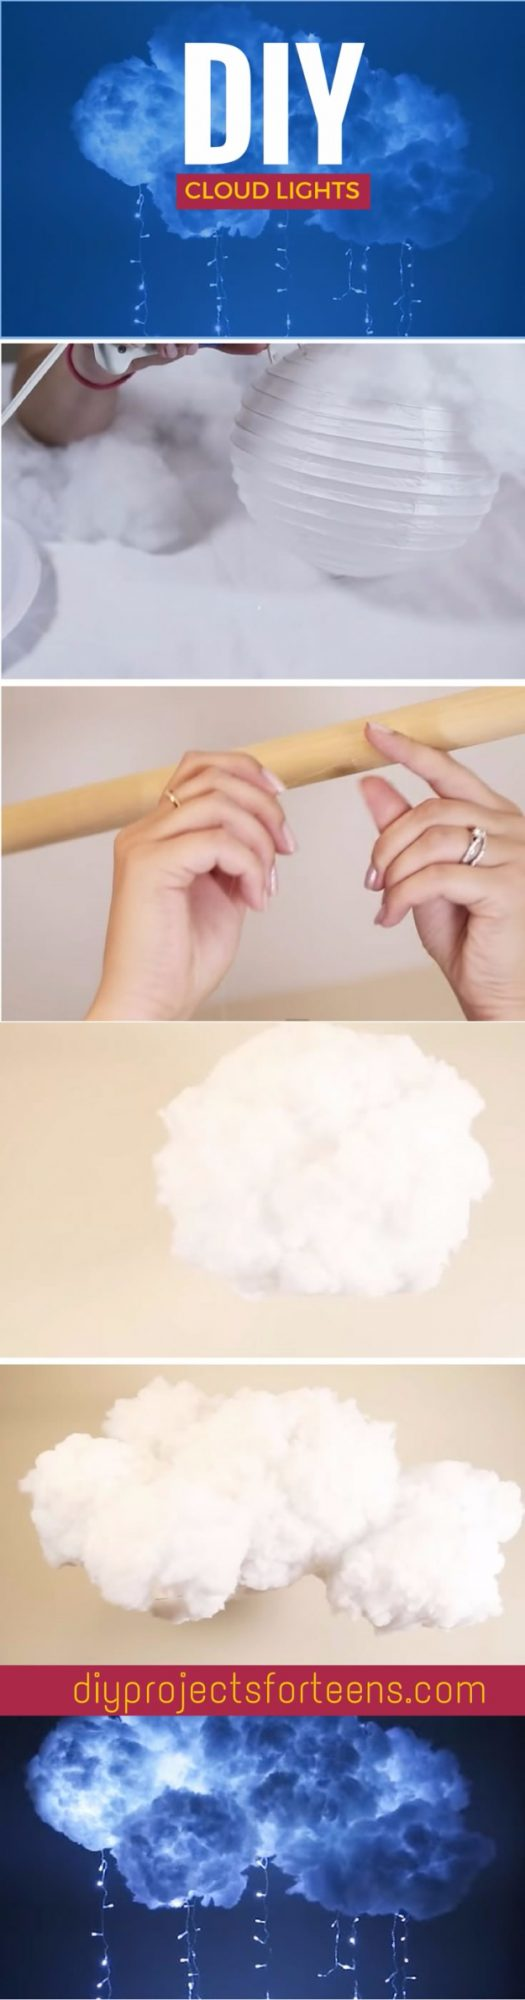 16 Cool And Super Easy DIY Projects For Your Home